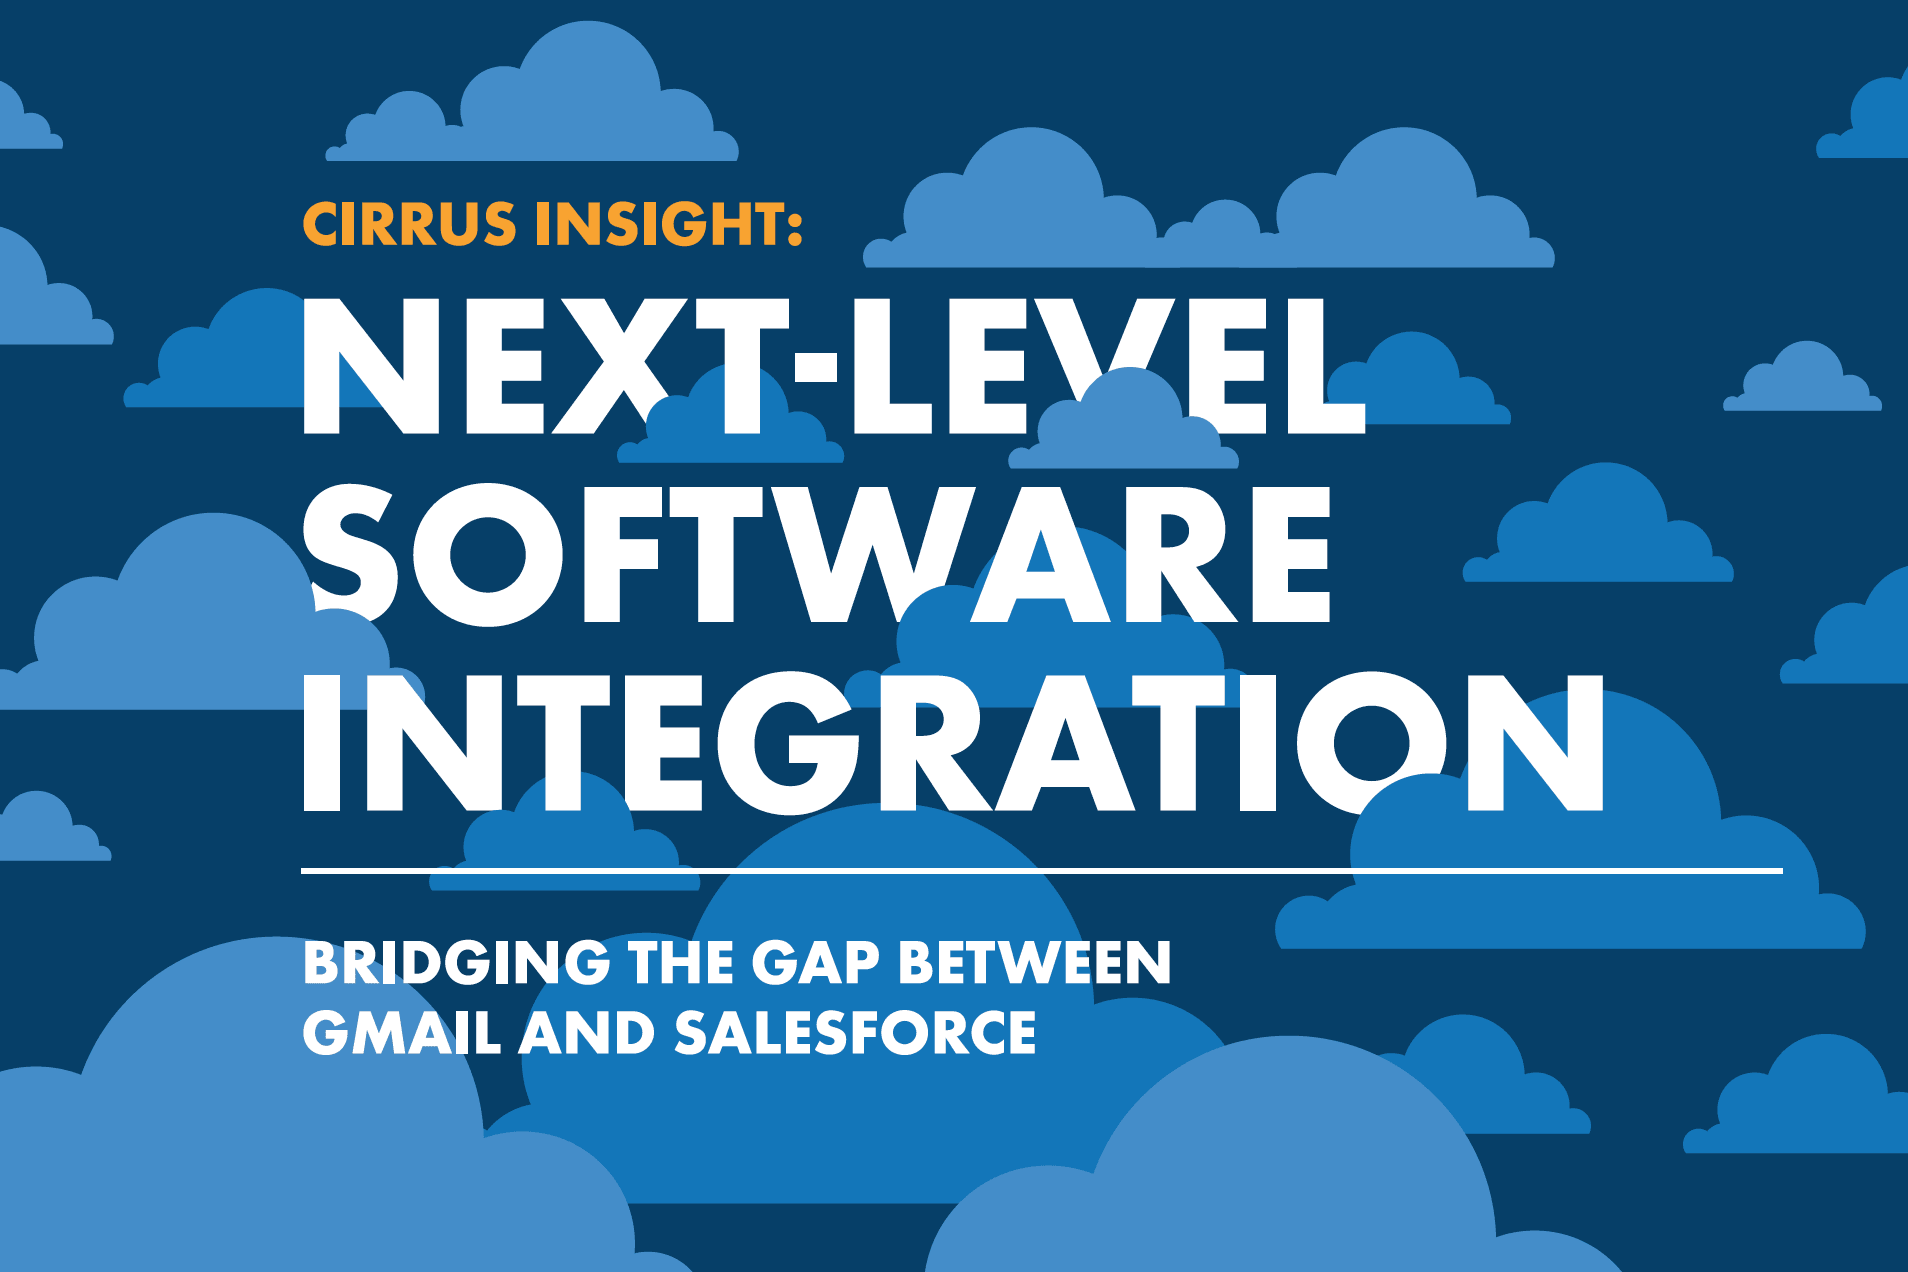 Bridging the Gap Between Email and Salesforce with Cirrus Insight